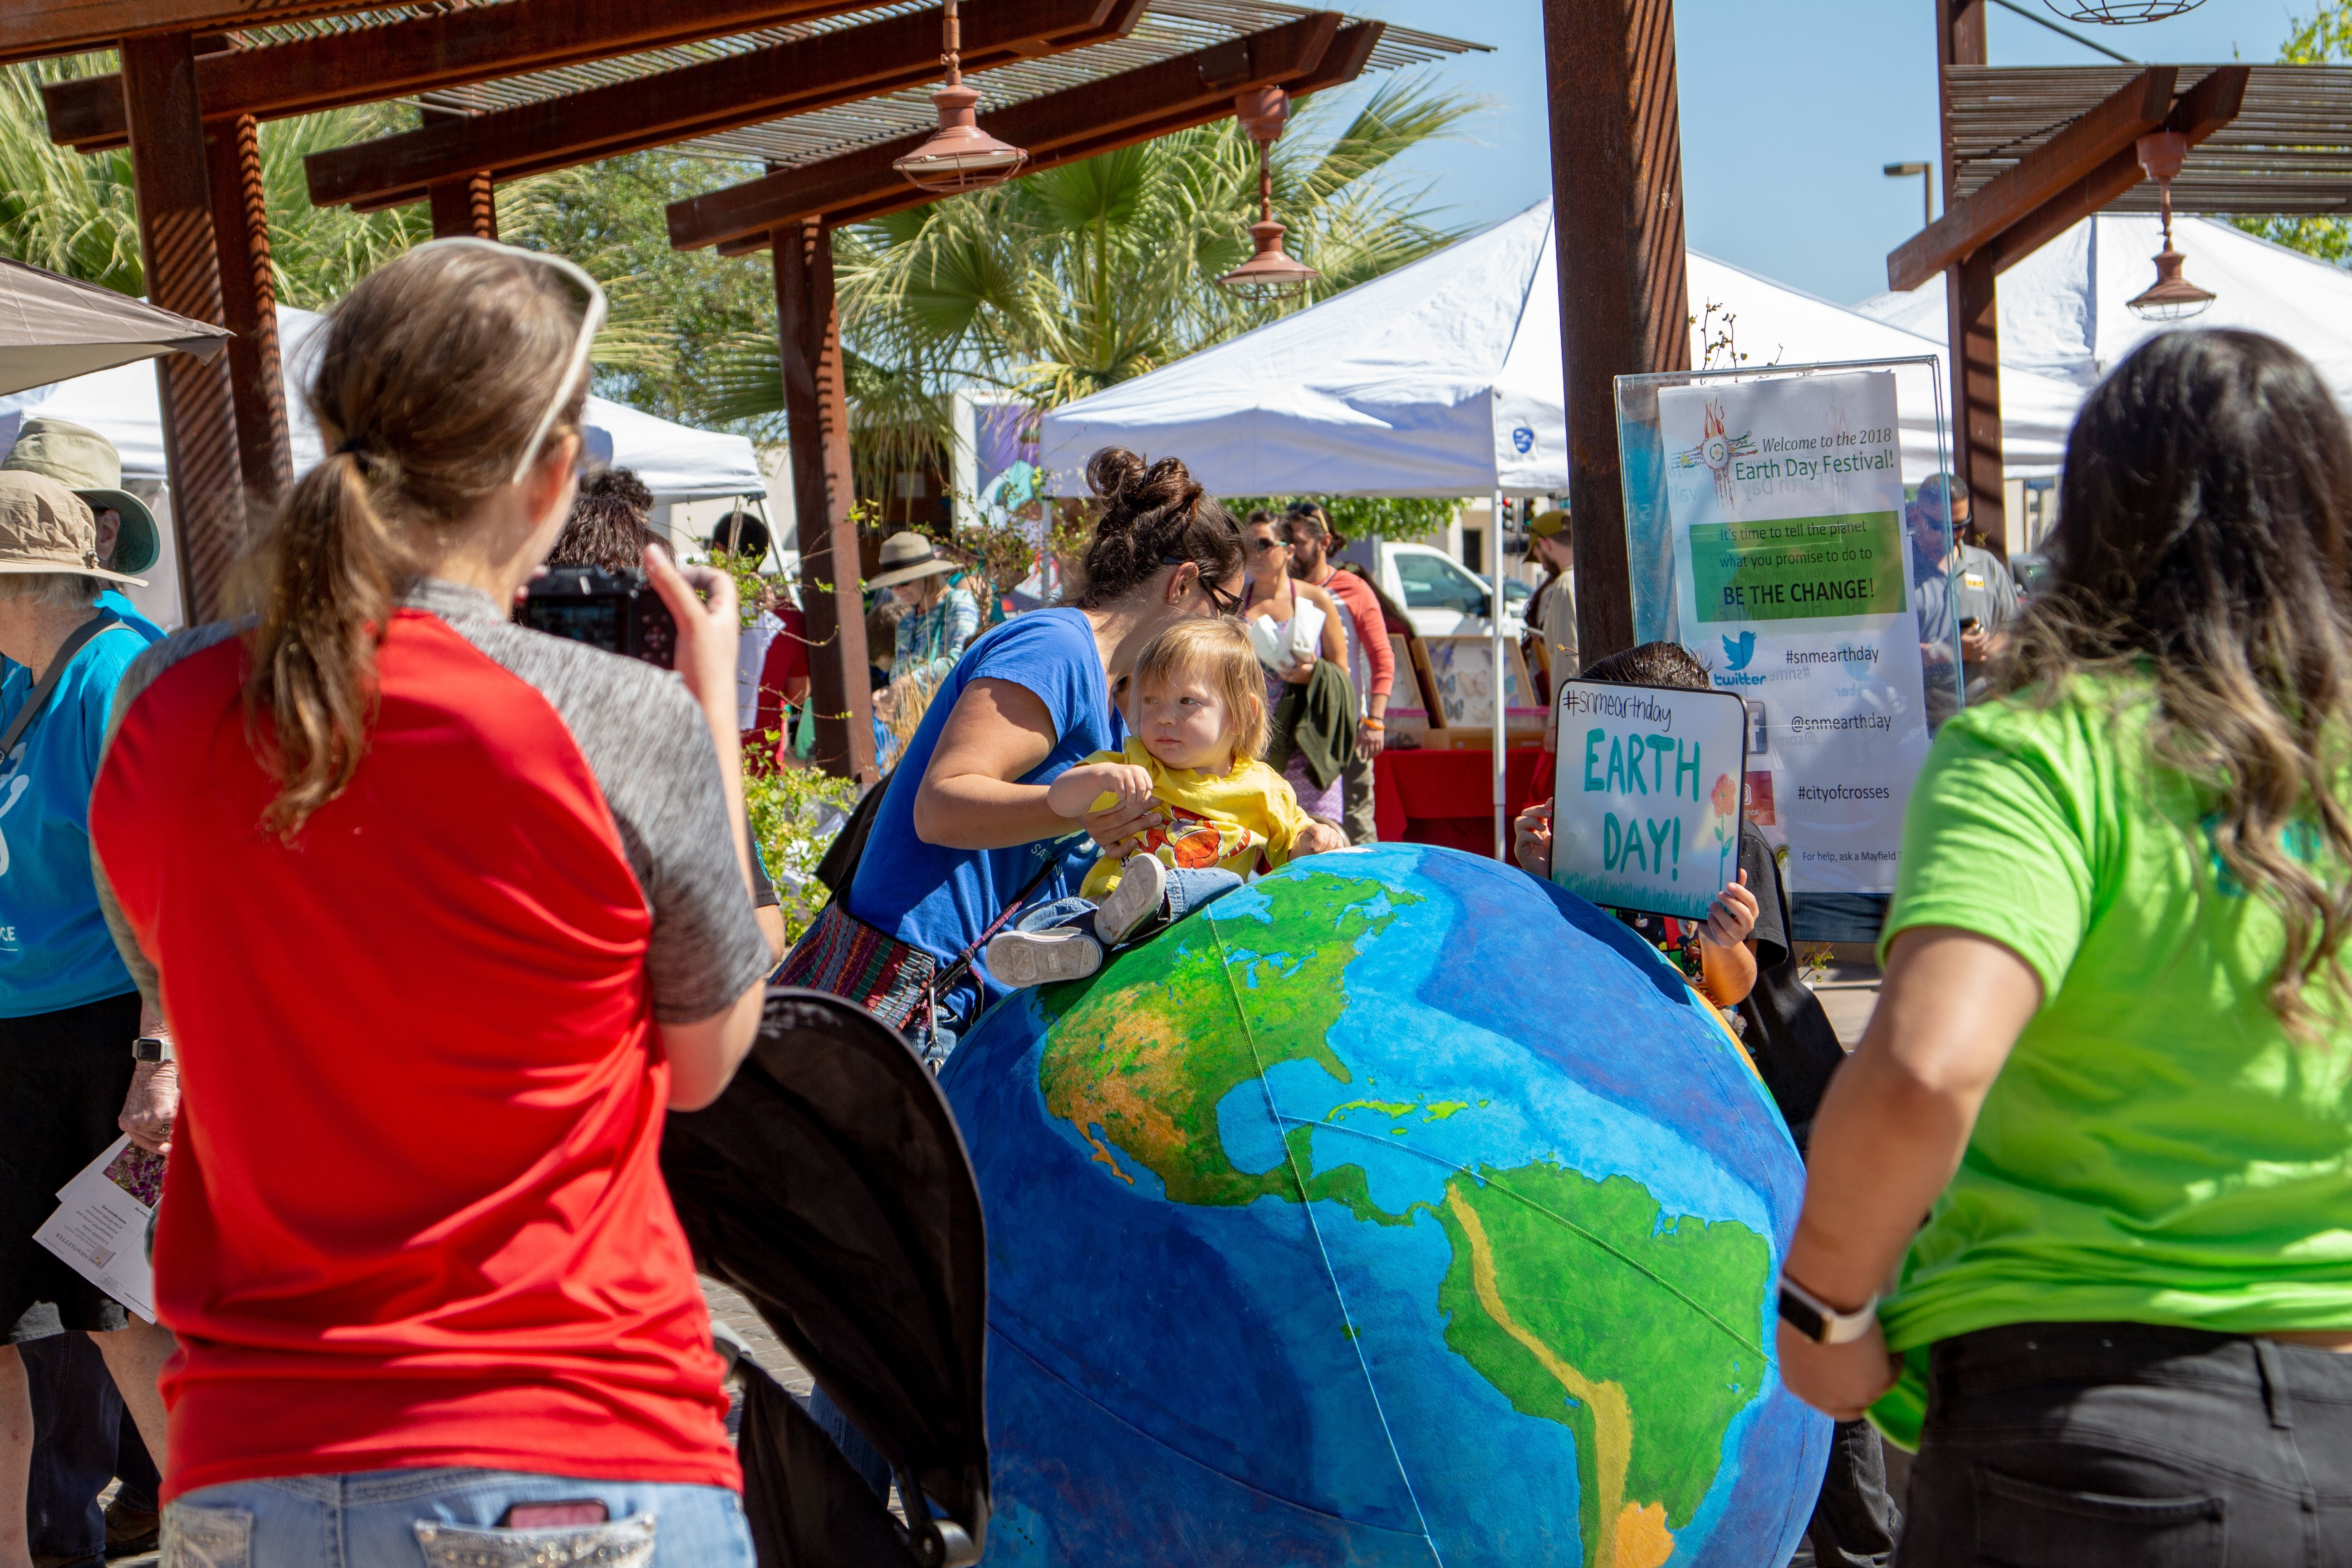 People take photos with the large inflatable Earth at the Earth Day celebration on April 21, 2018 at the Plaza de Las Cruces.